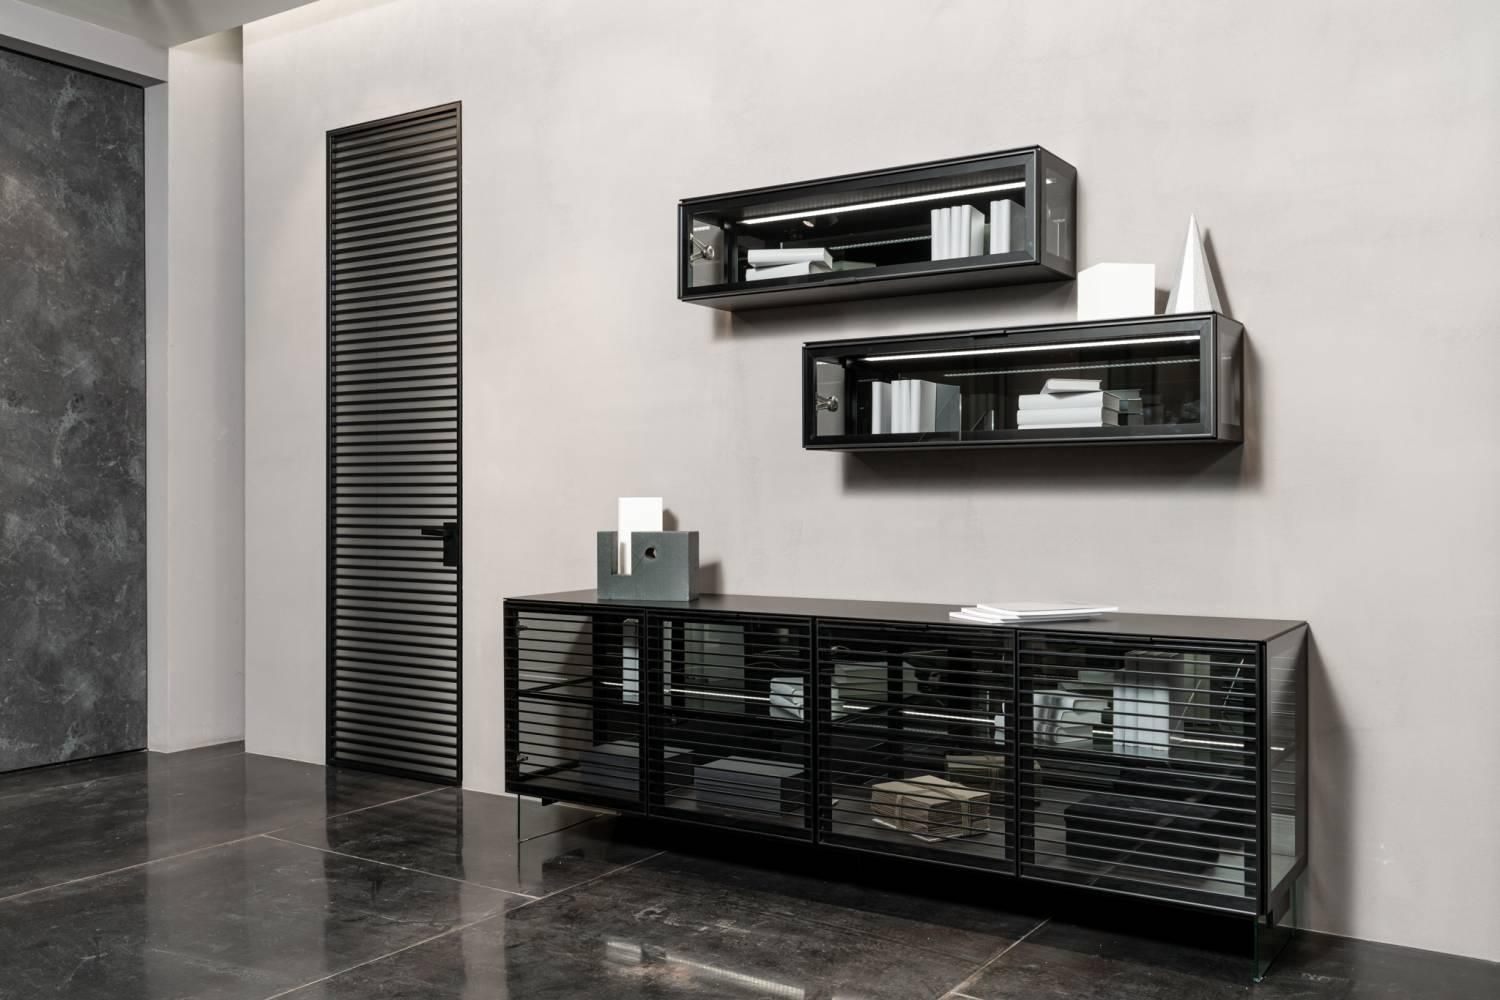 UBIK chest of drawers. The facade of the Largo LINEA layout of aluminium profile. Shelves, sidewalls Grey Transparent glass. Aluminum profile Black Matt Color. The back wall of the Mirror. The legs are made of glass.